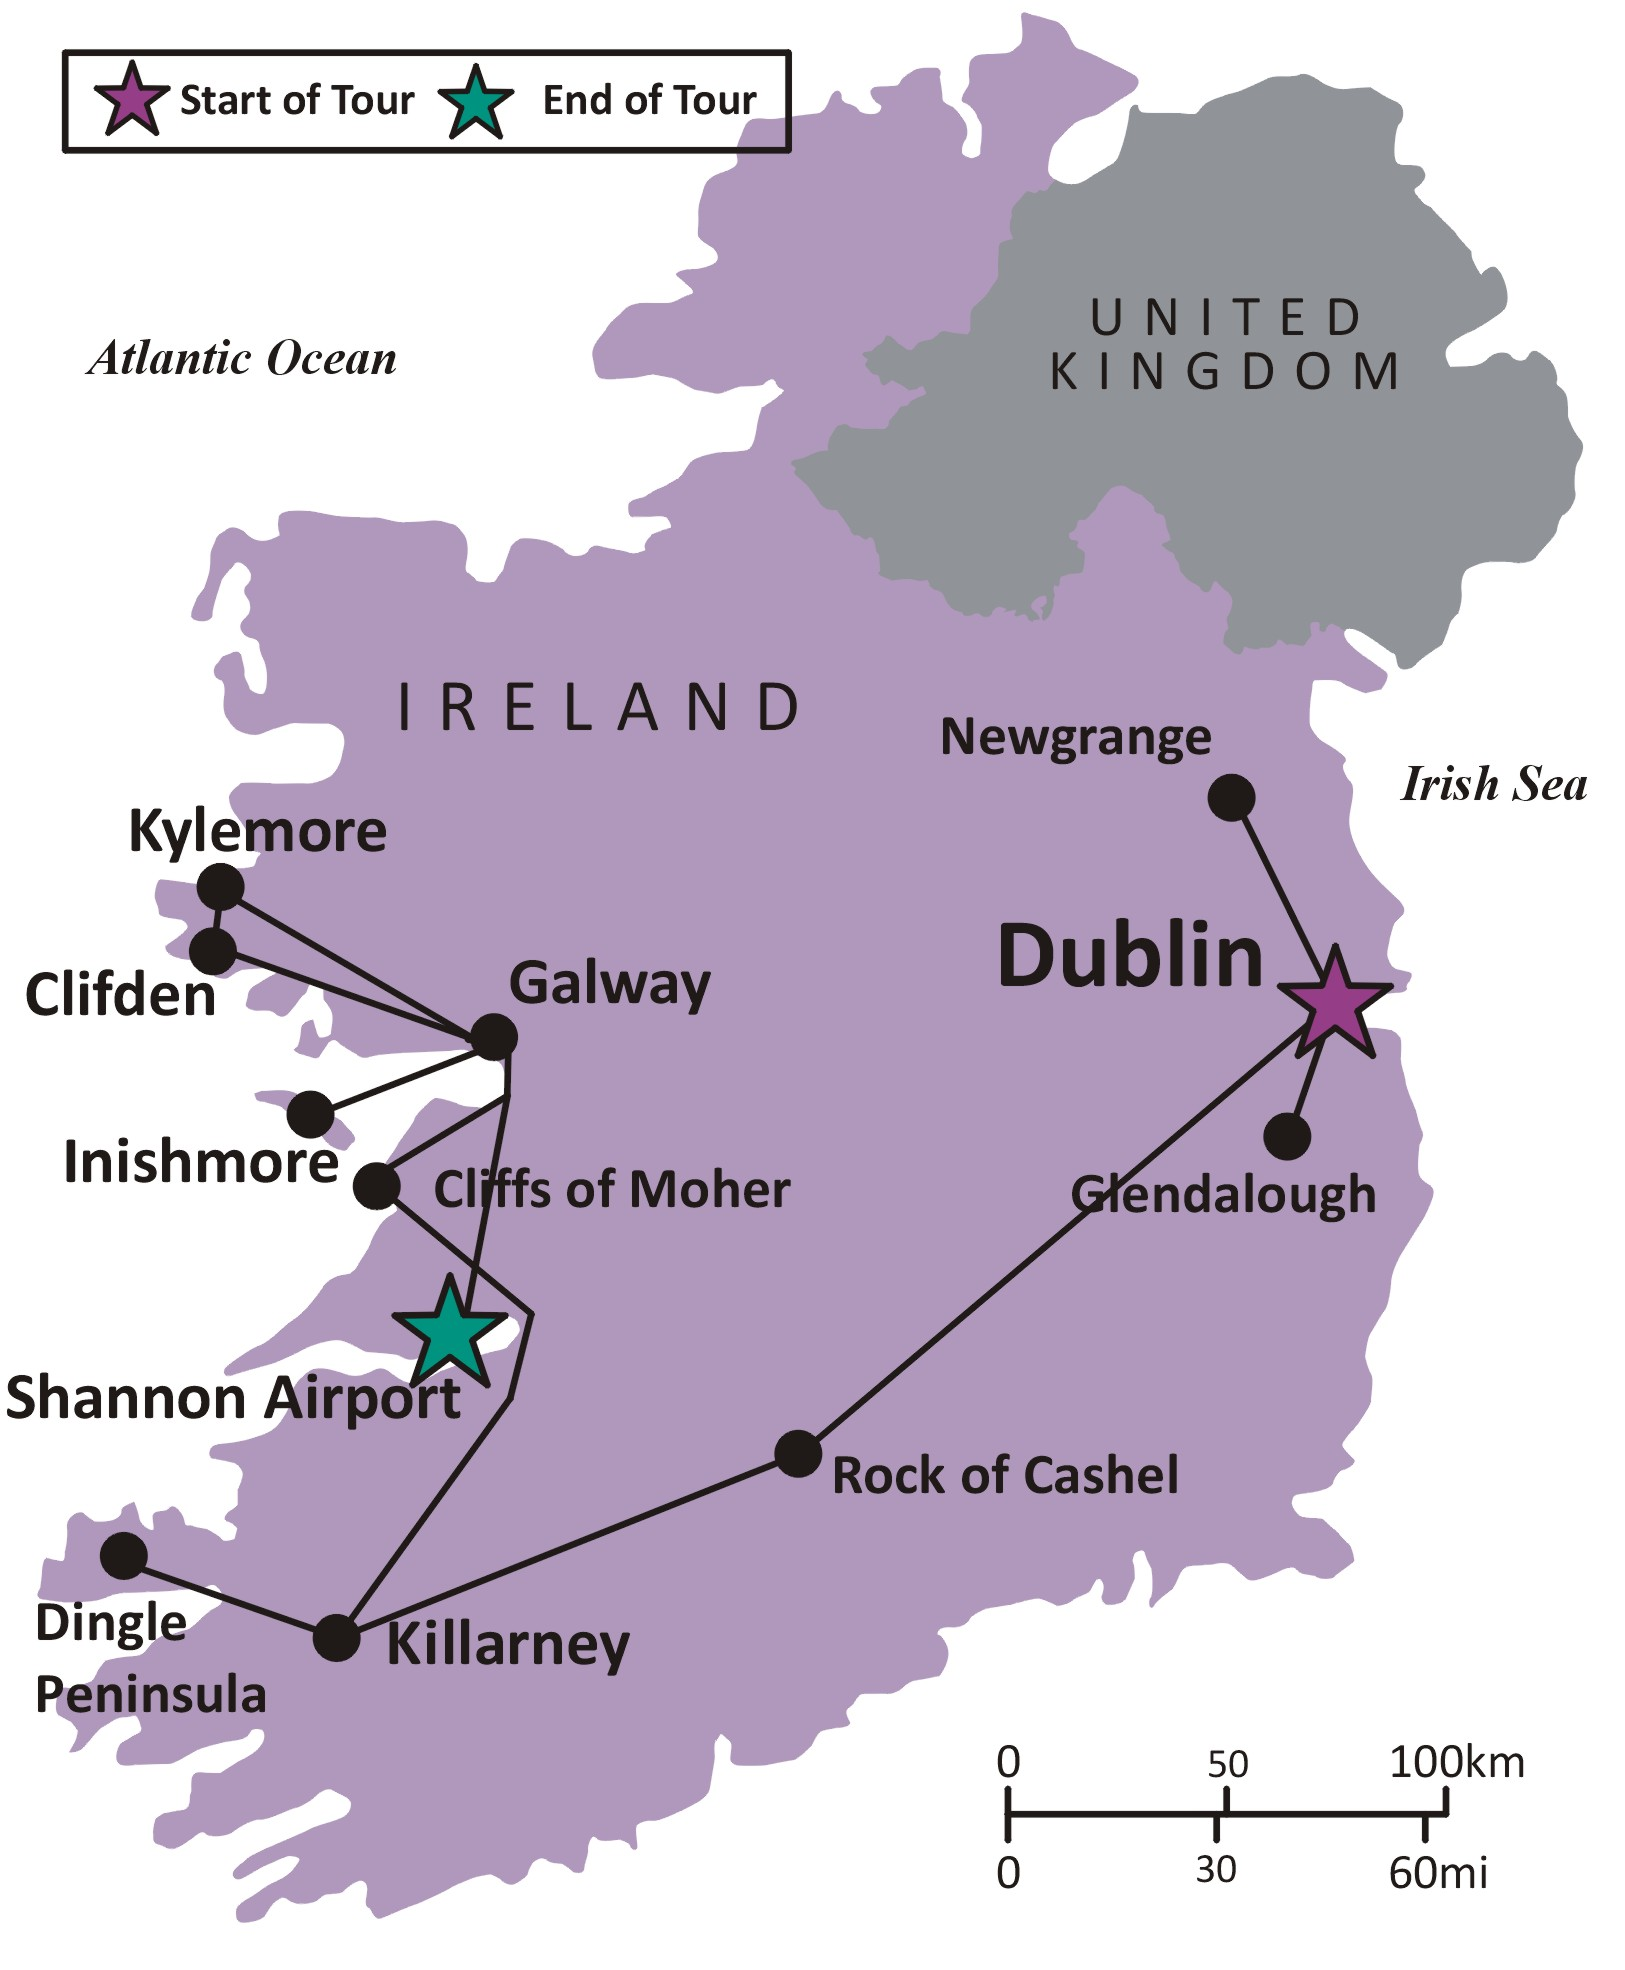 Map Of Ireland Showing Dingle.Sights And Soul Travels Ireland Dublin And The Emerald Isle